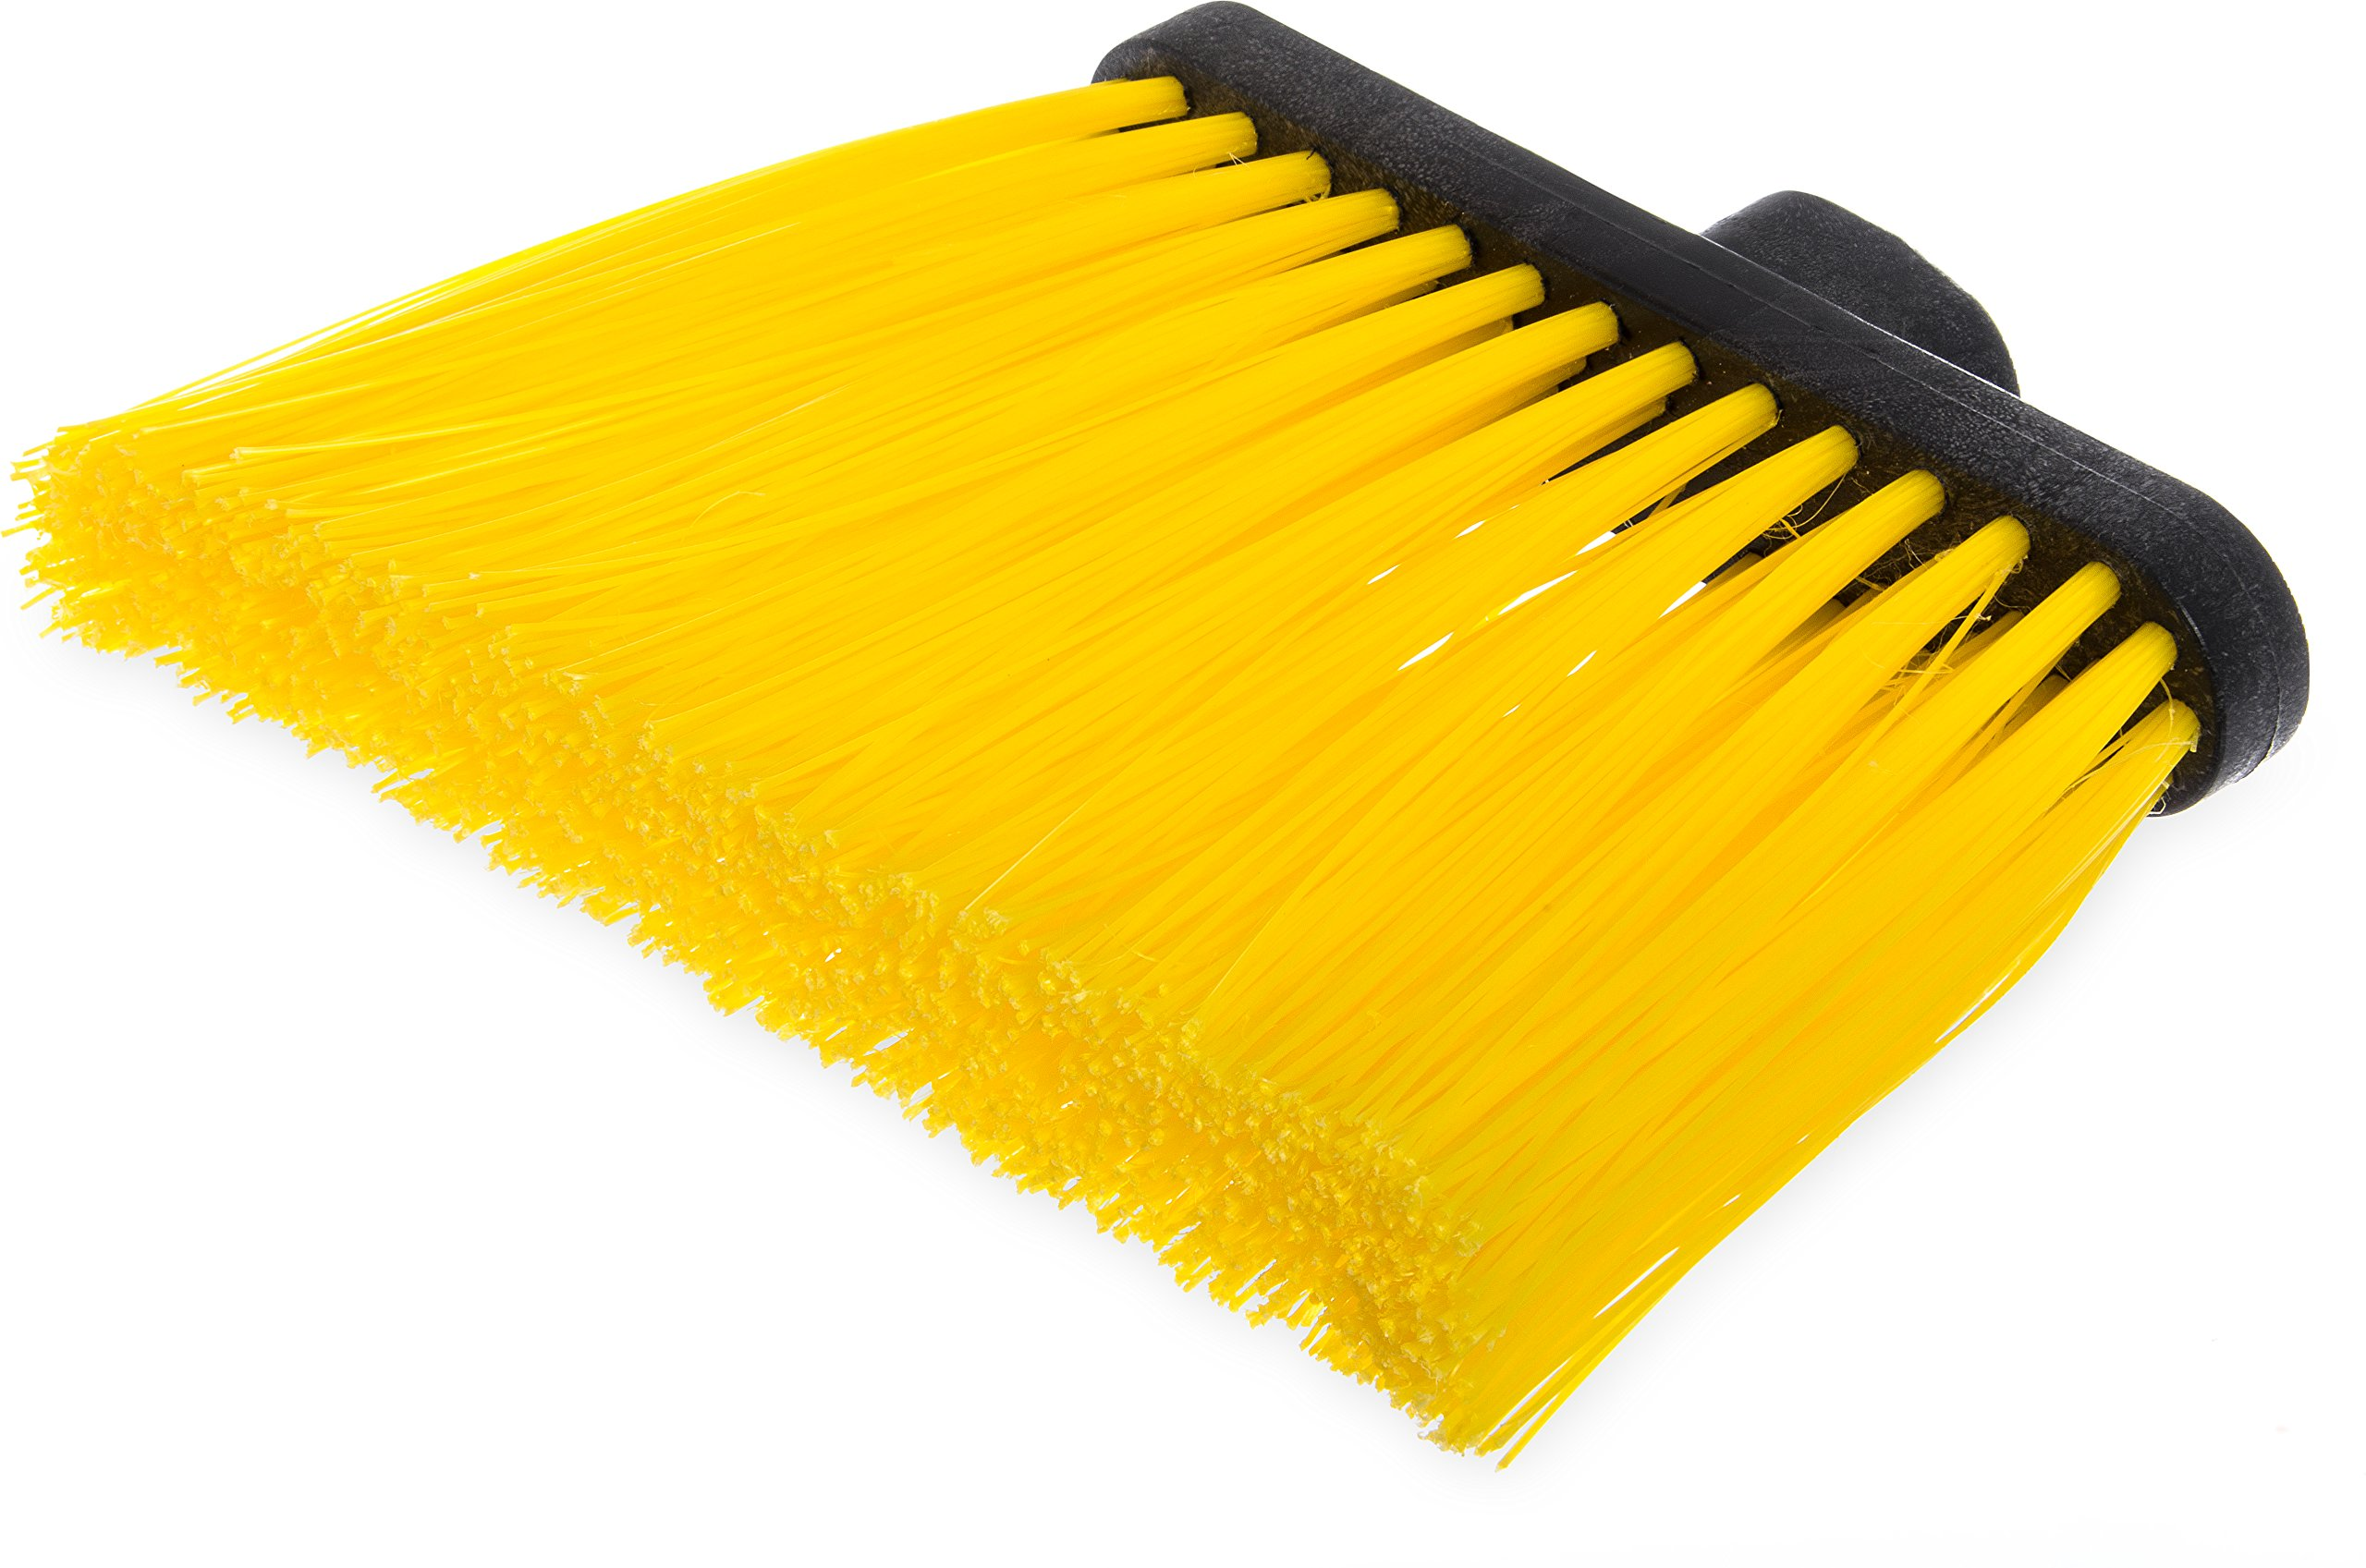 Carlisle 3686804 Duo-Sweep UnFlagged Angle Broom Head, 8'', Yellow (Pack of 12)